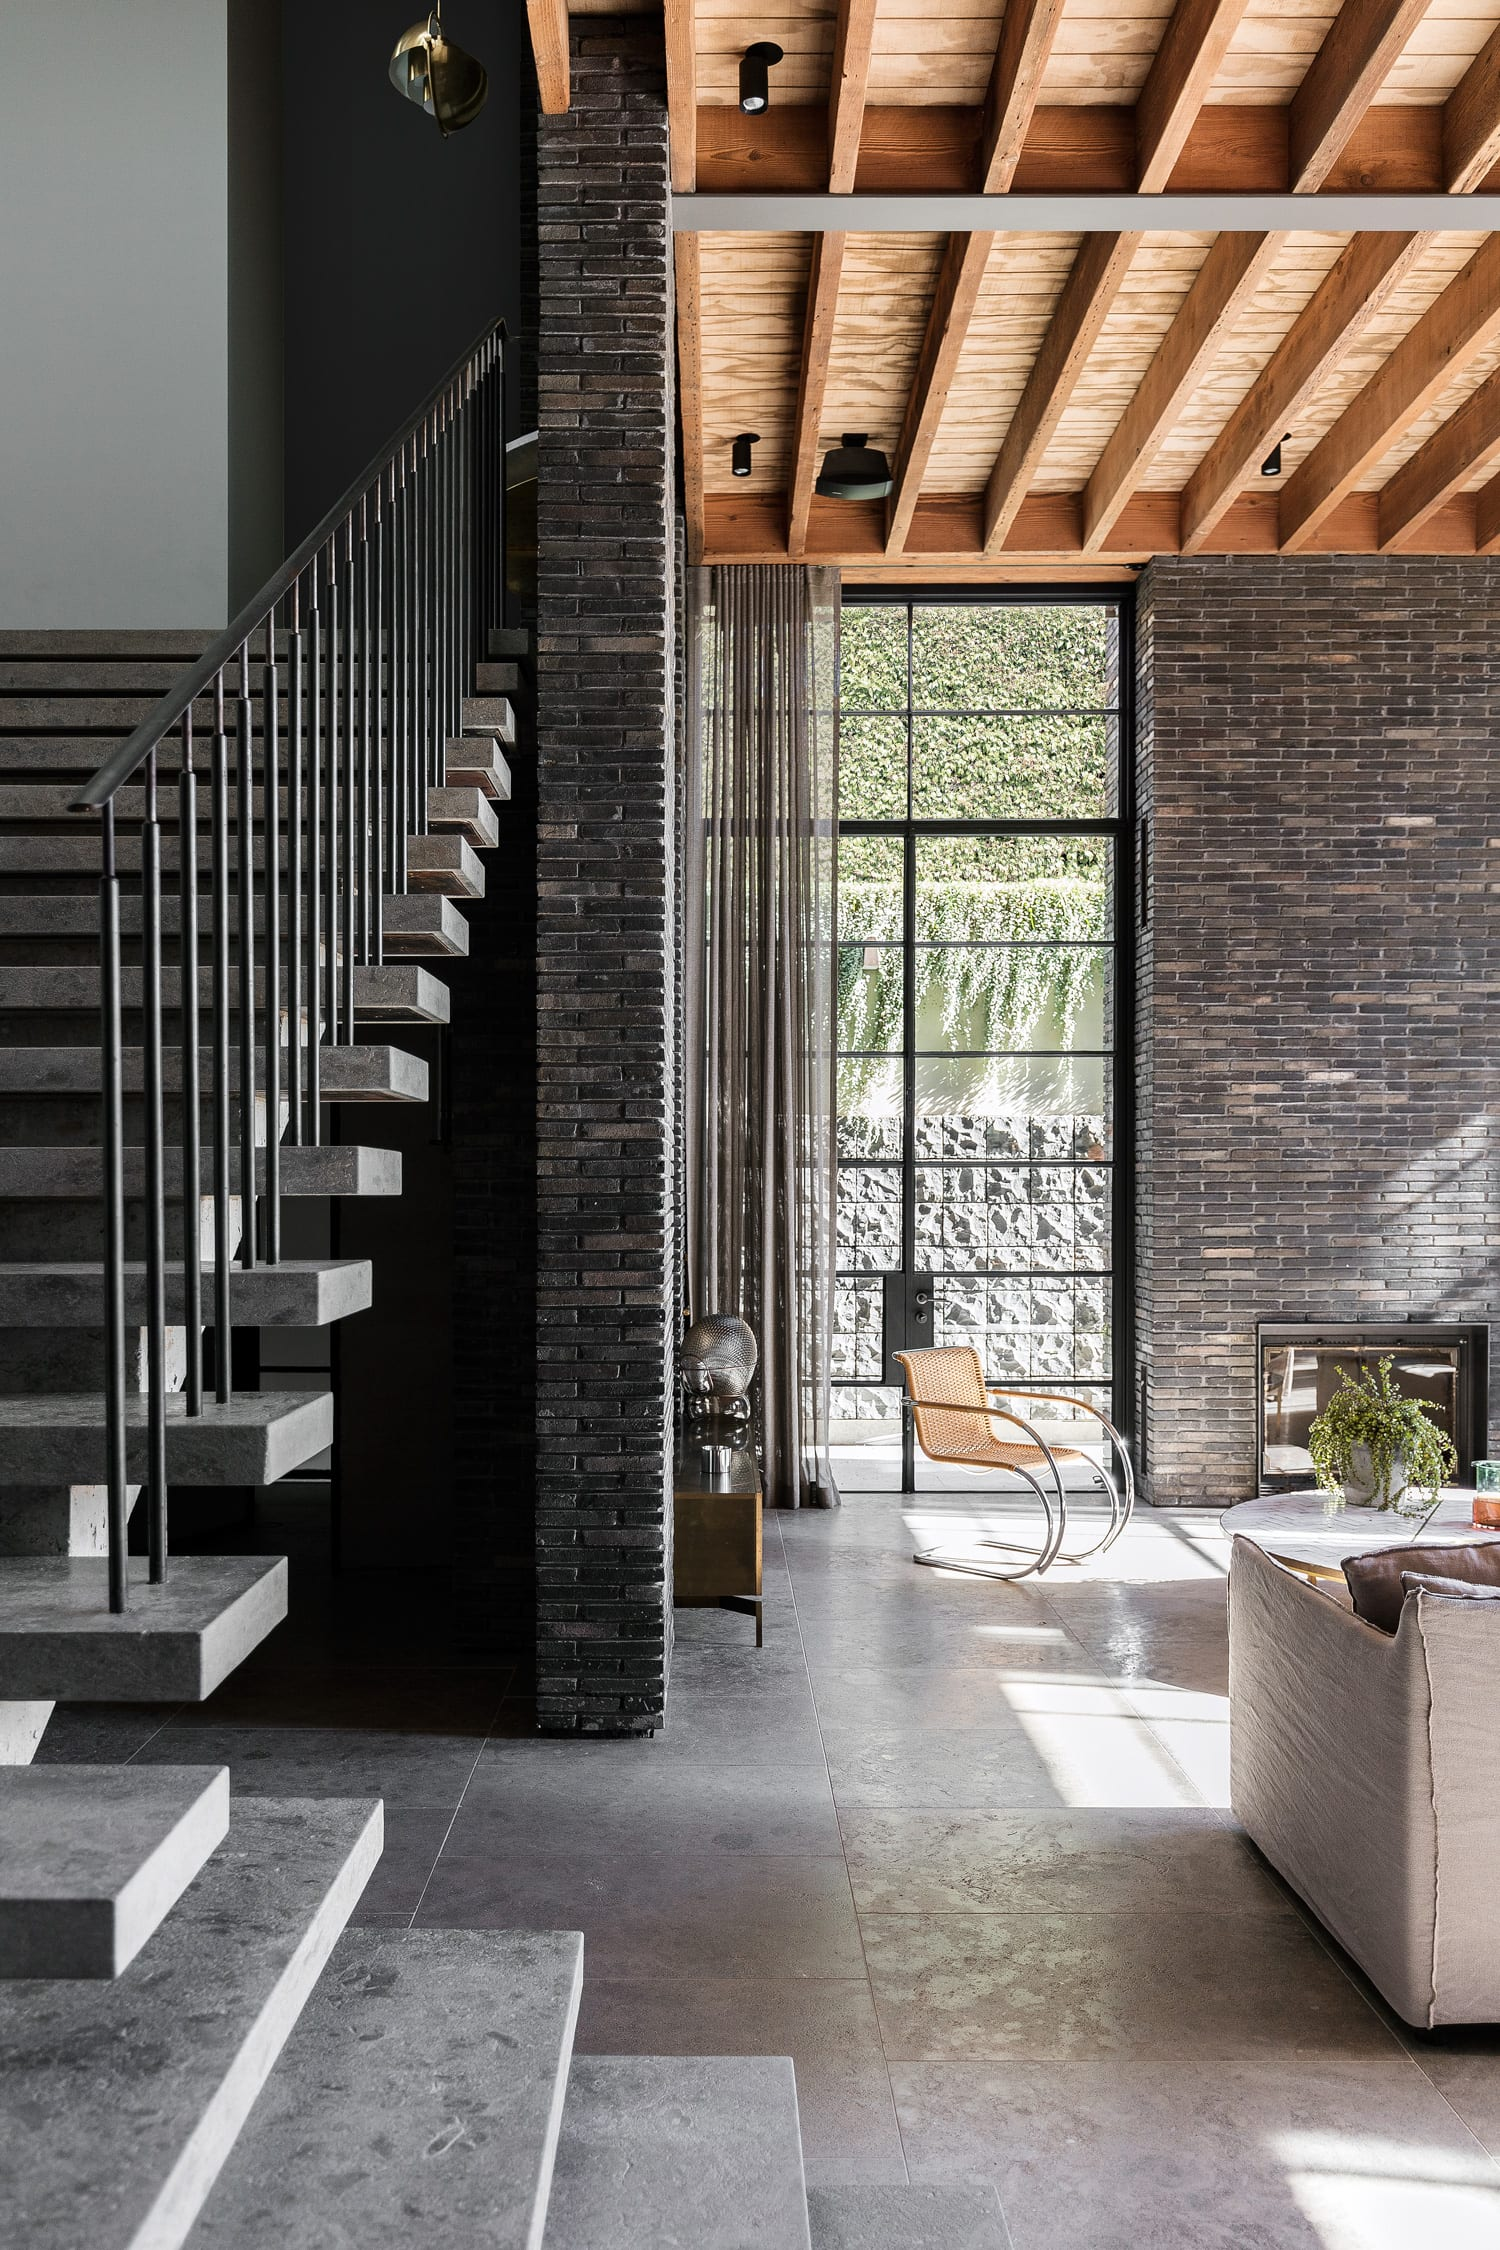 Laycock Road House In Sydney By Telly Theodore Allied Office. Photo Tom Ferguson | Yellowtrace